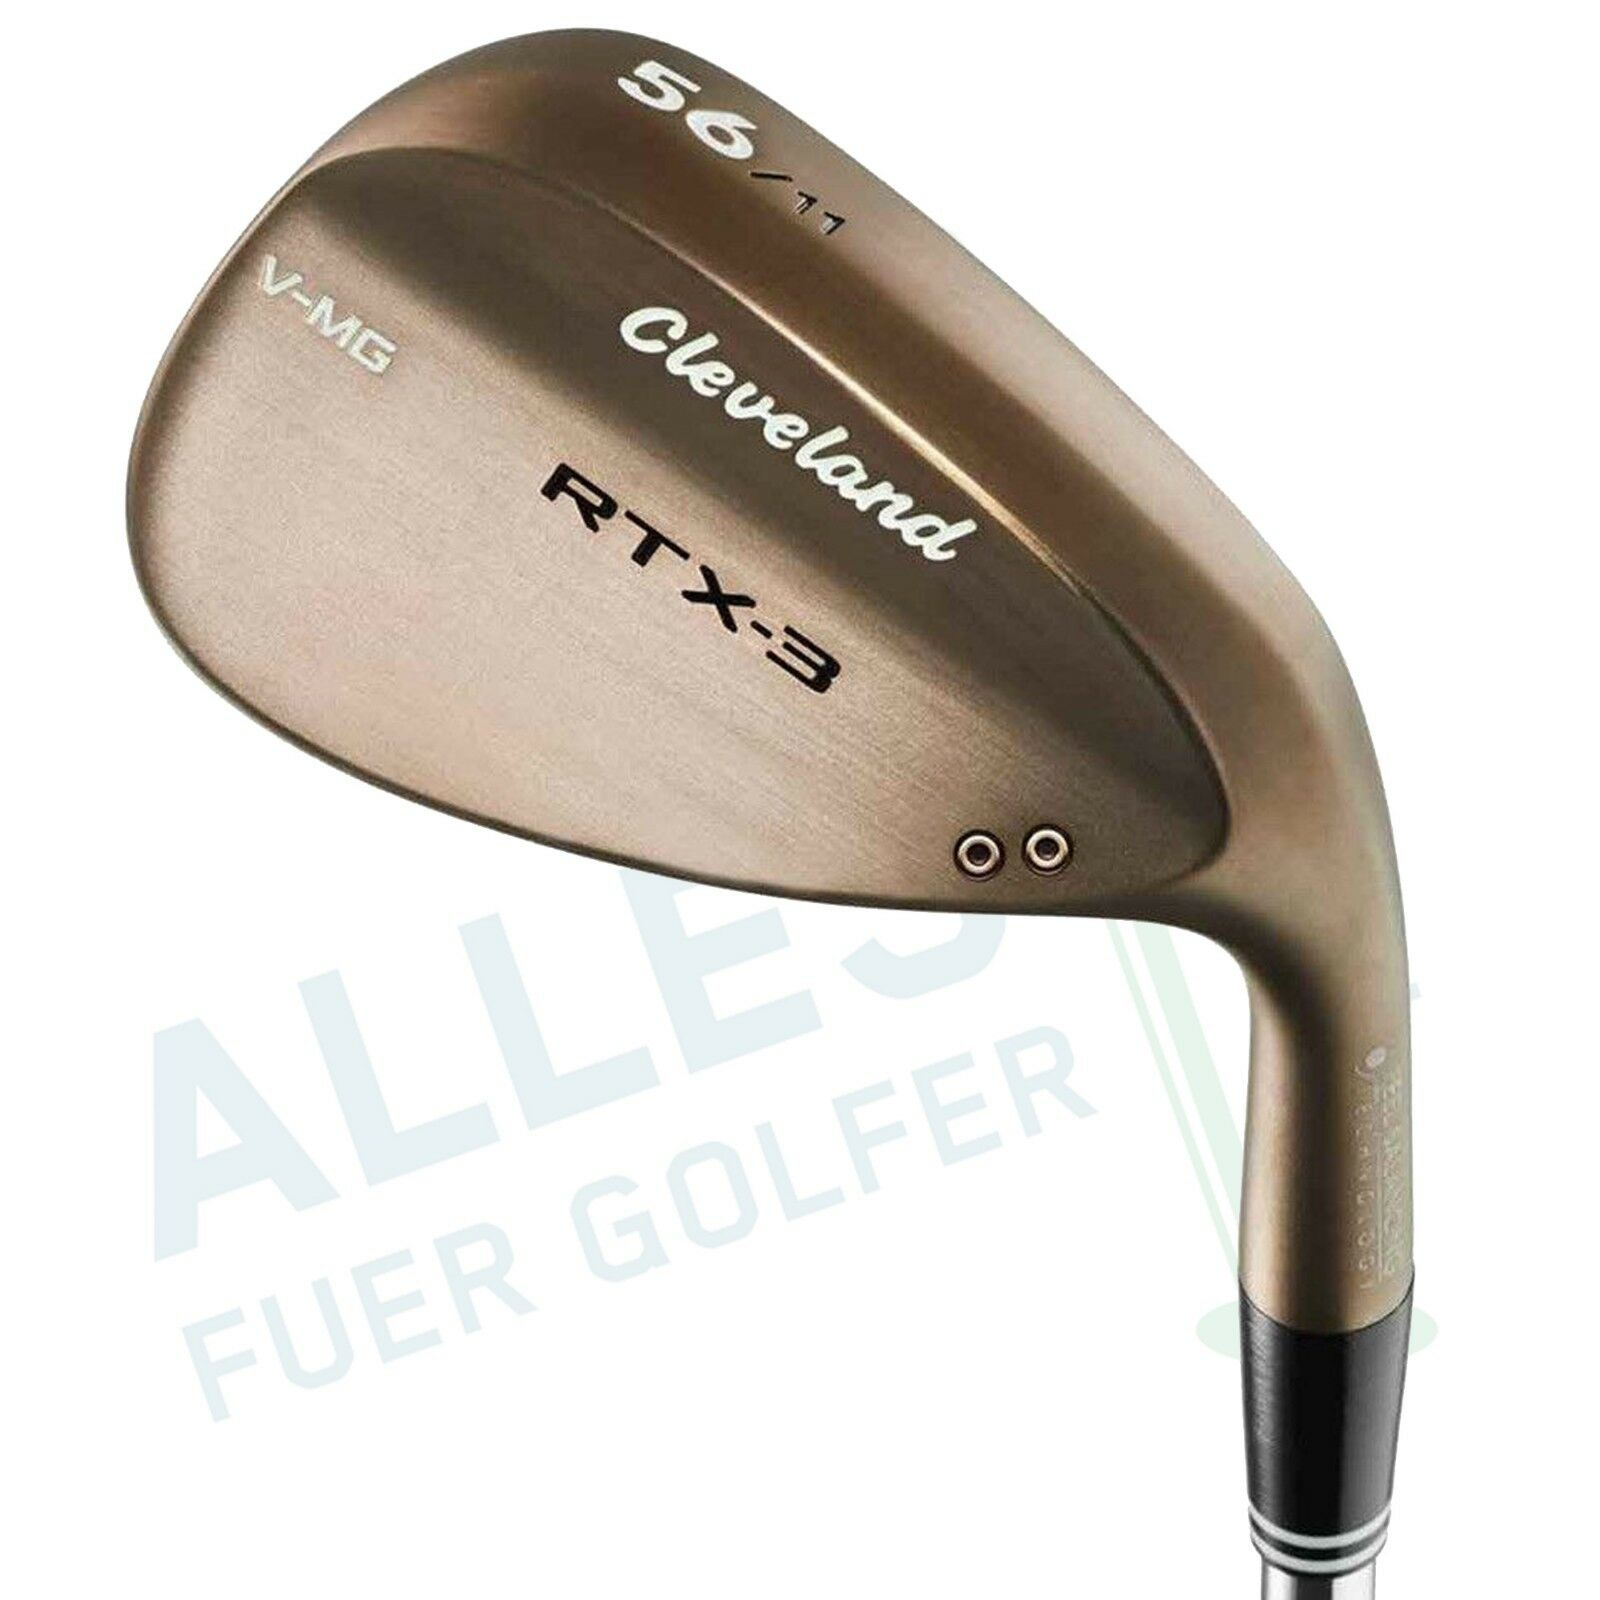 Wedges  Cleveland RTX 3 Tour RAW para diestros - muchas variantes disponibles  en stock